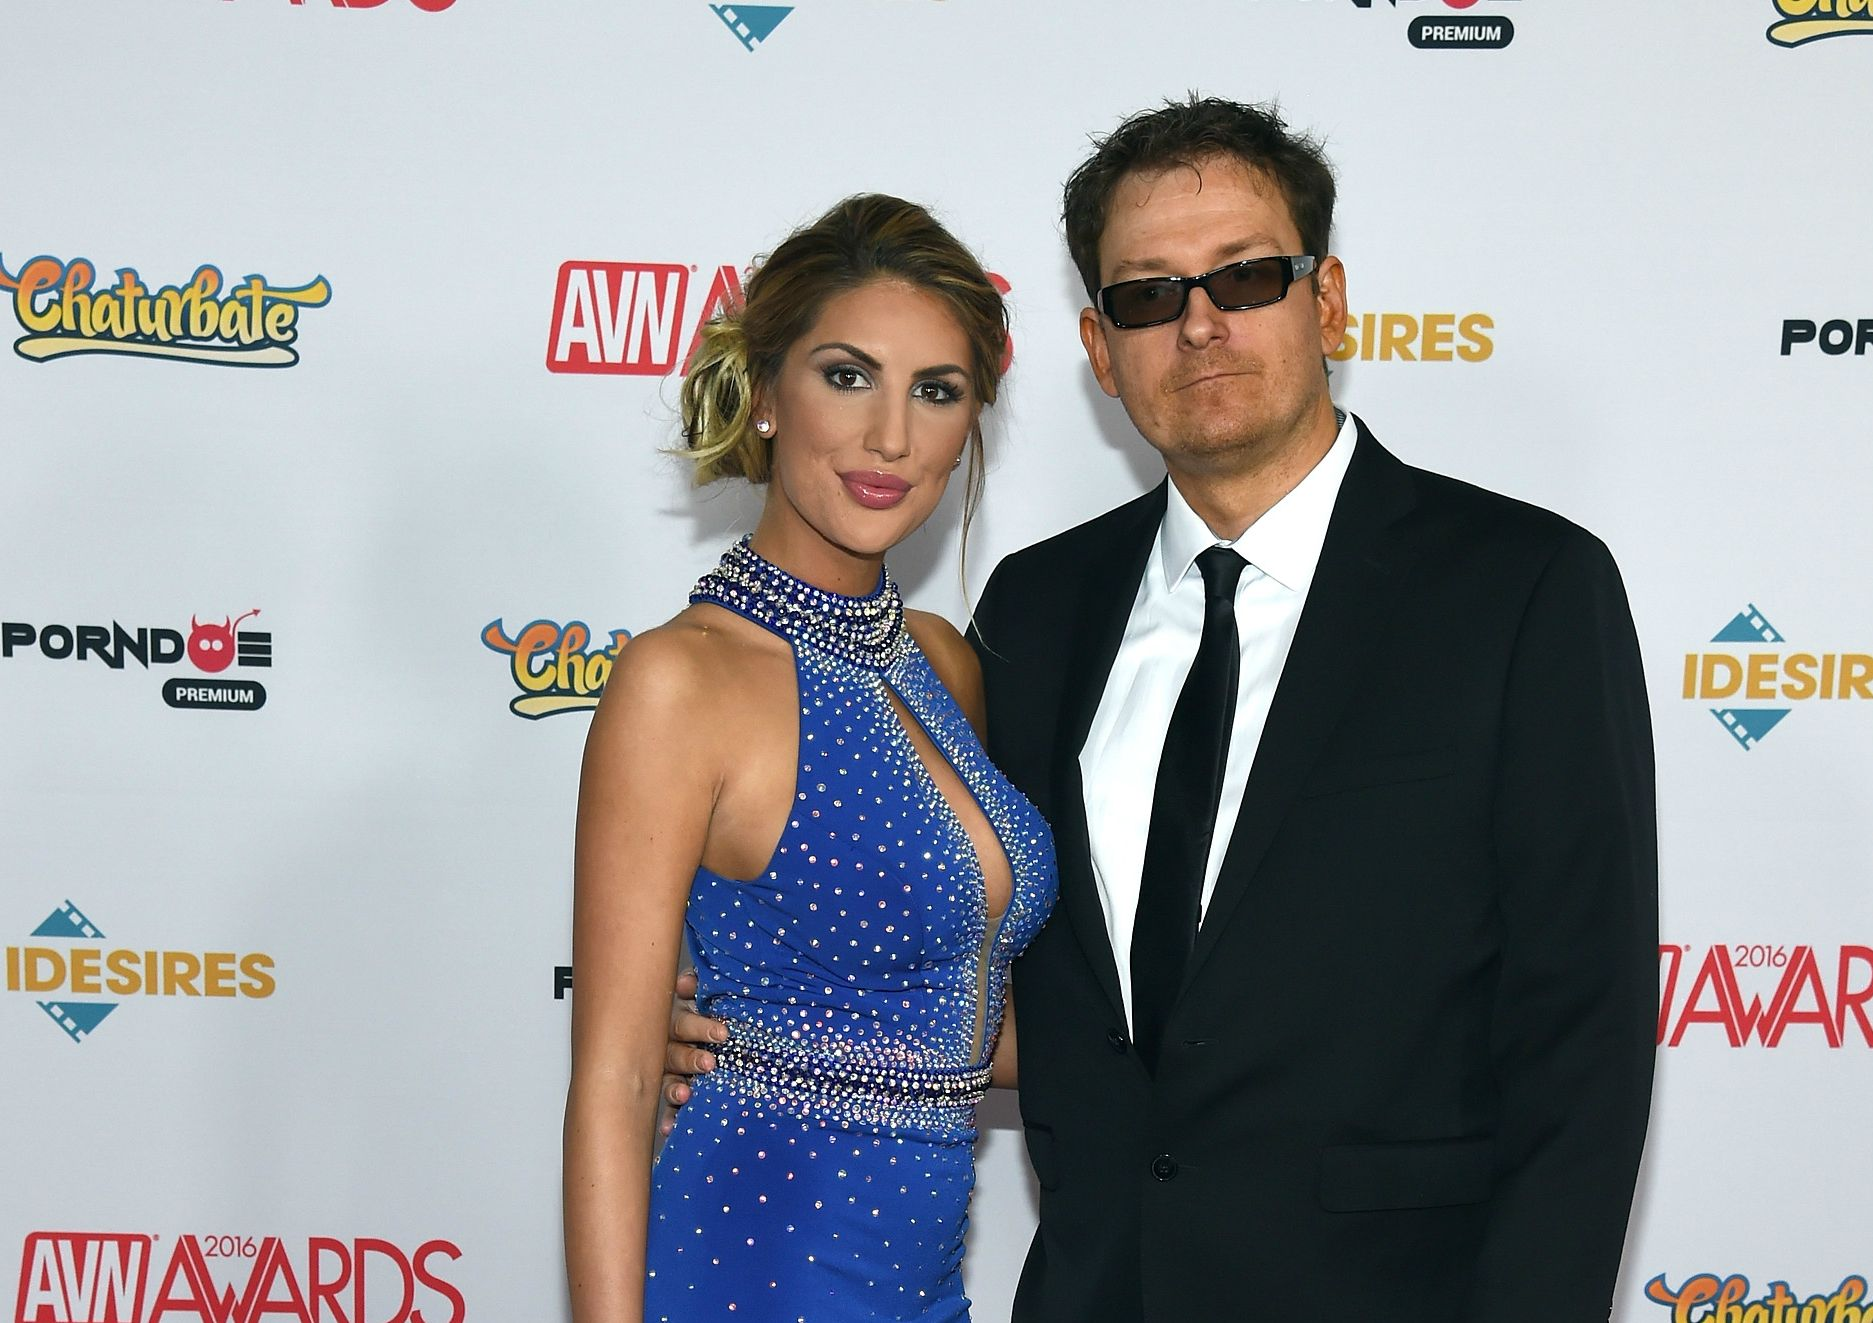 August Ames's husband blames cyberbullies for her suicide